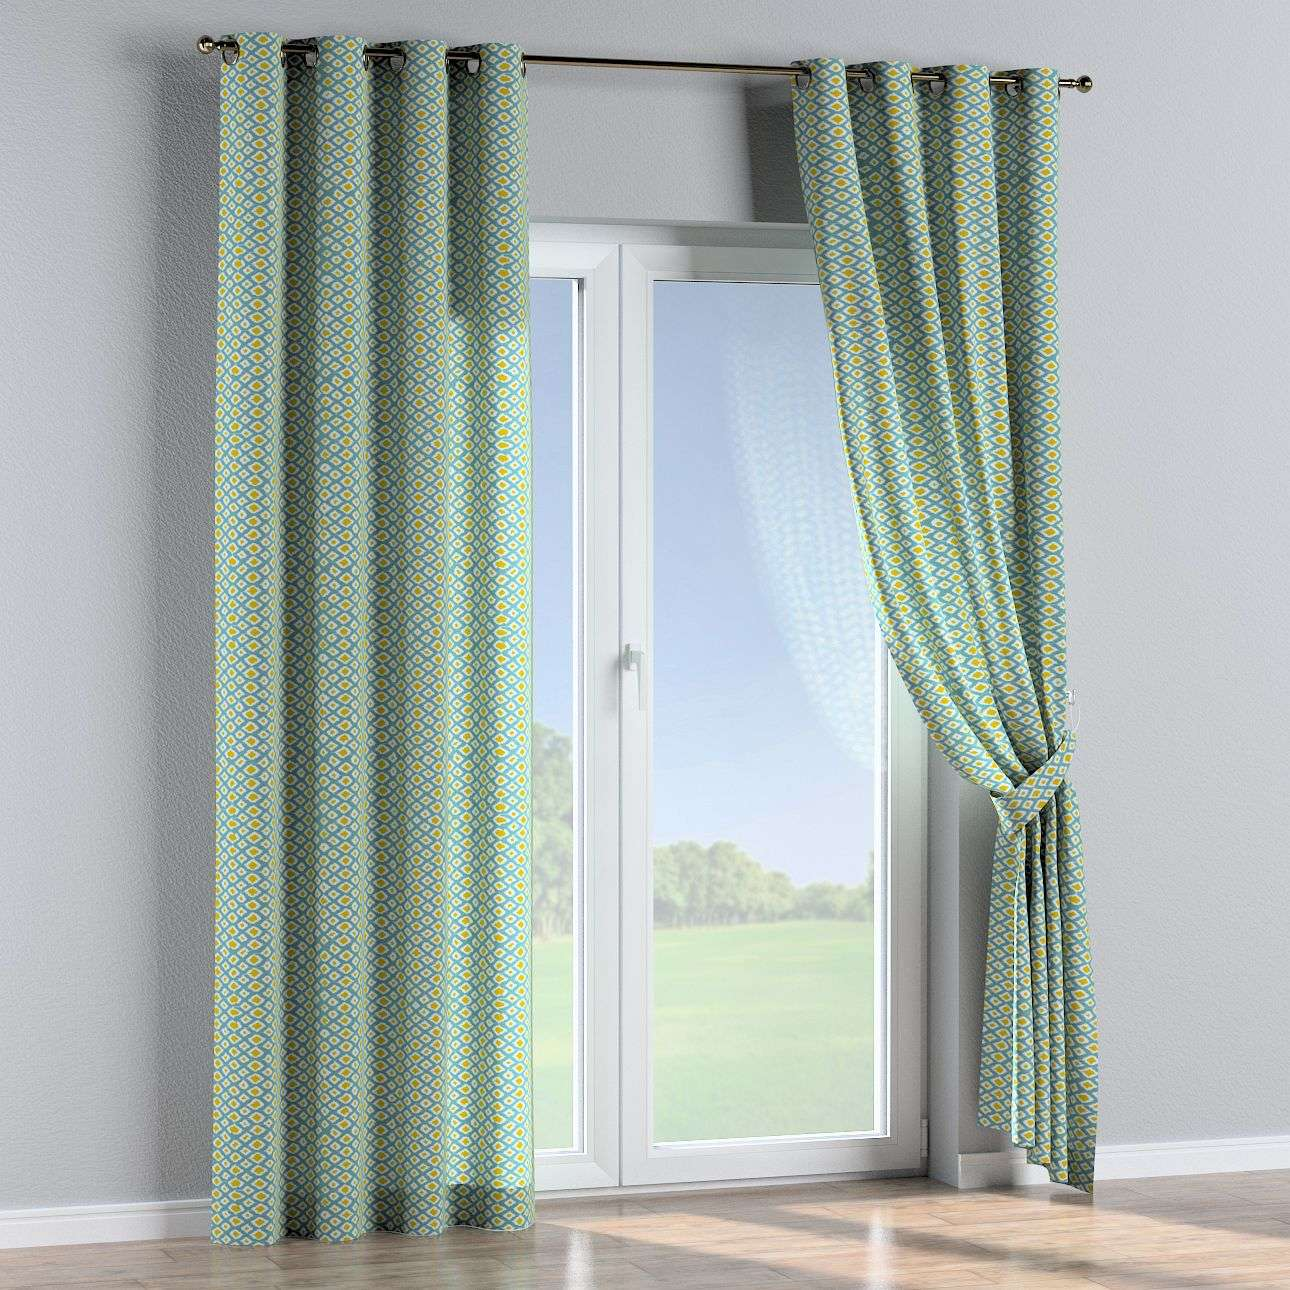 Eyelet curtains in collection Comics/Geometrical, fabric: 141-20